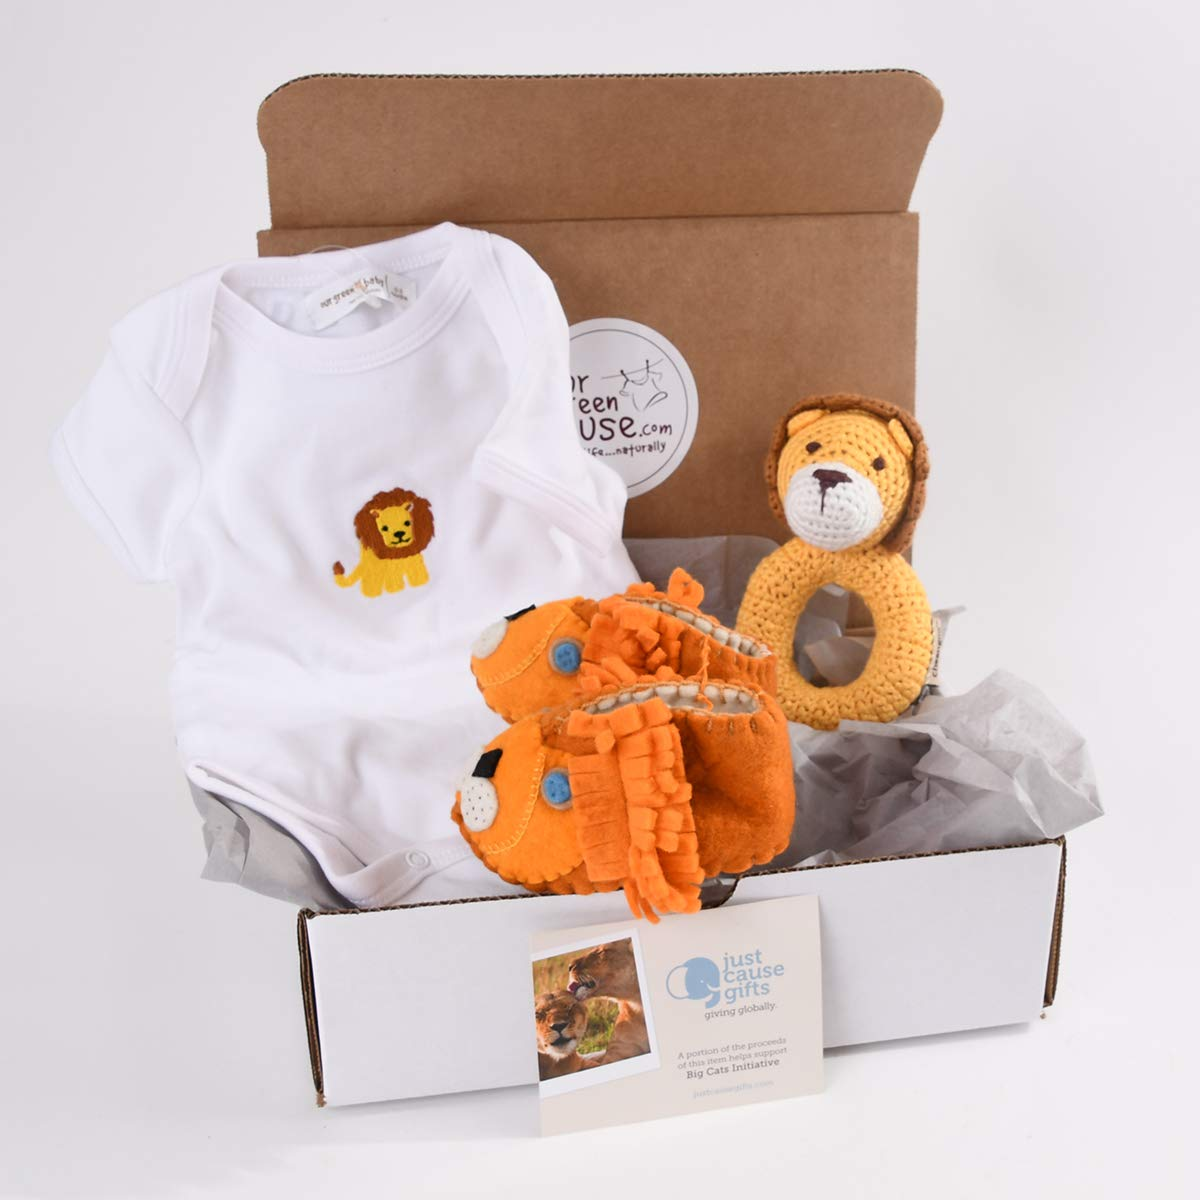 Baby Gifts That Give Back - Save The Lions Organic Toys and Clothes for Baby (0-3 Months)